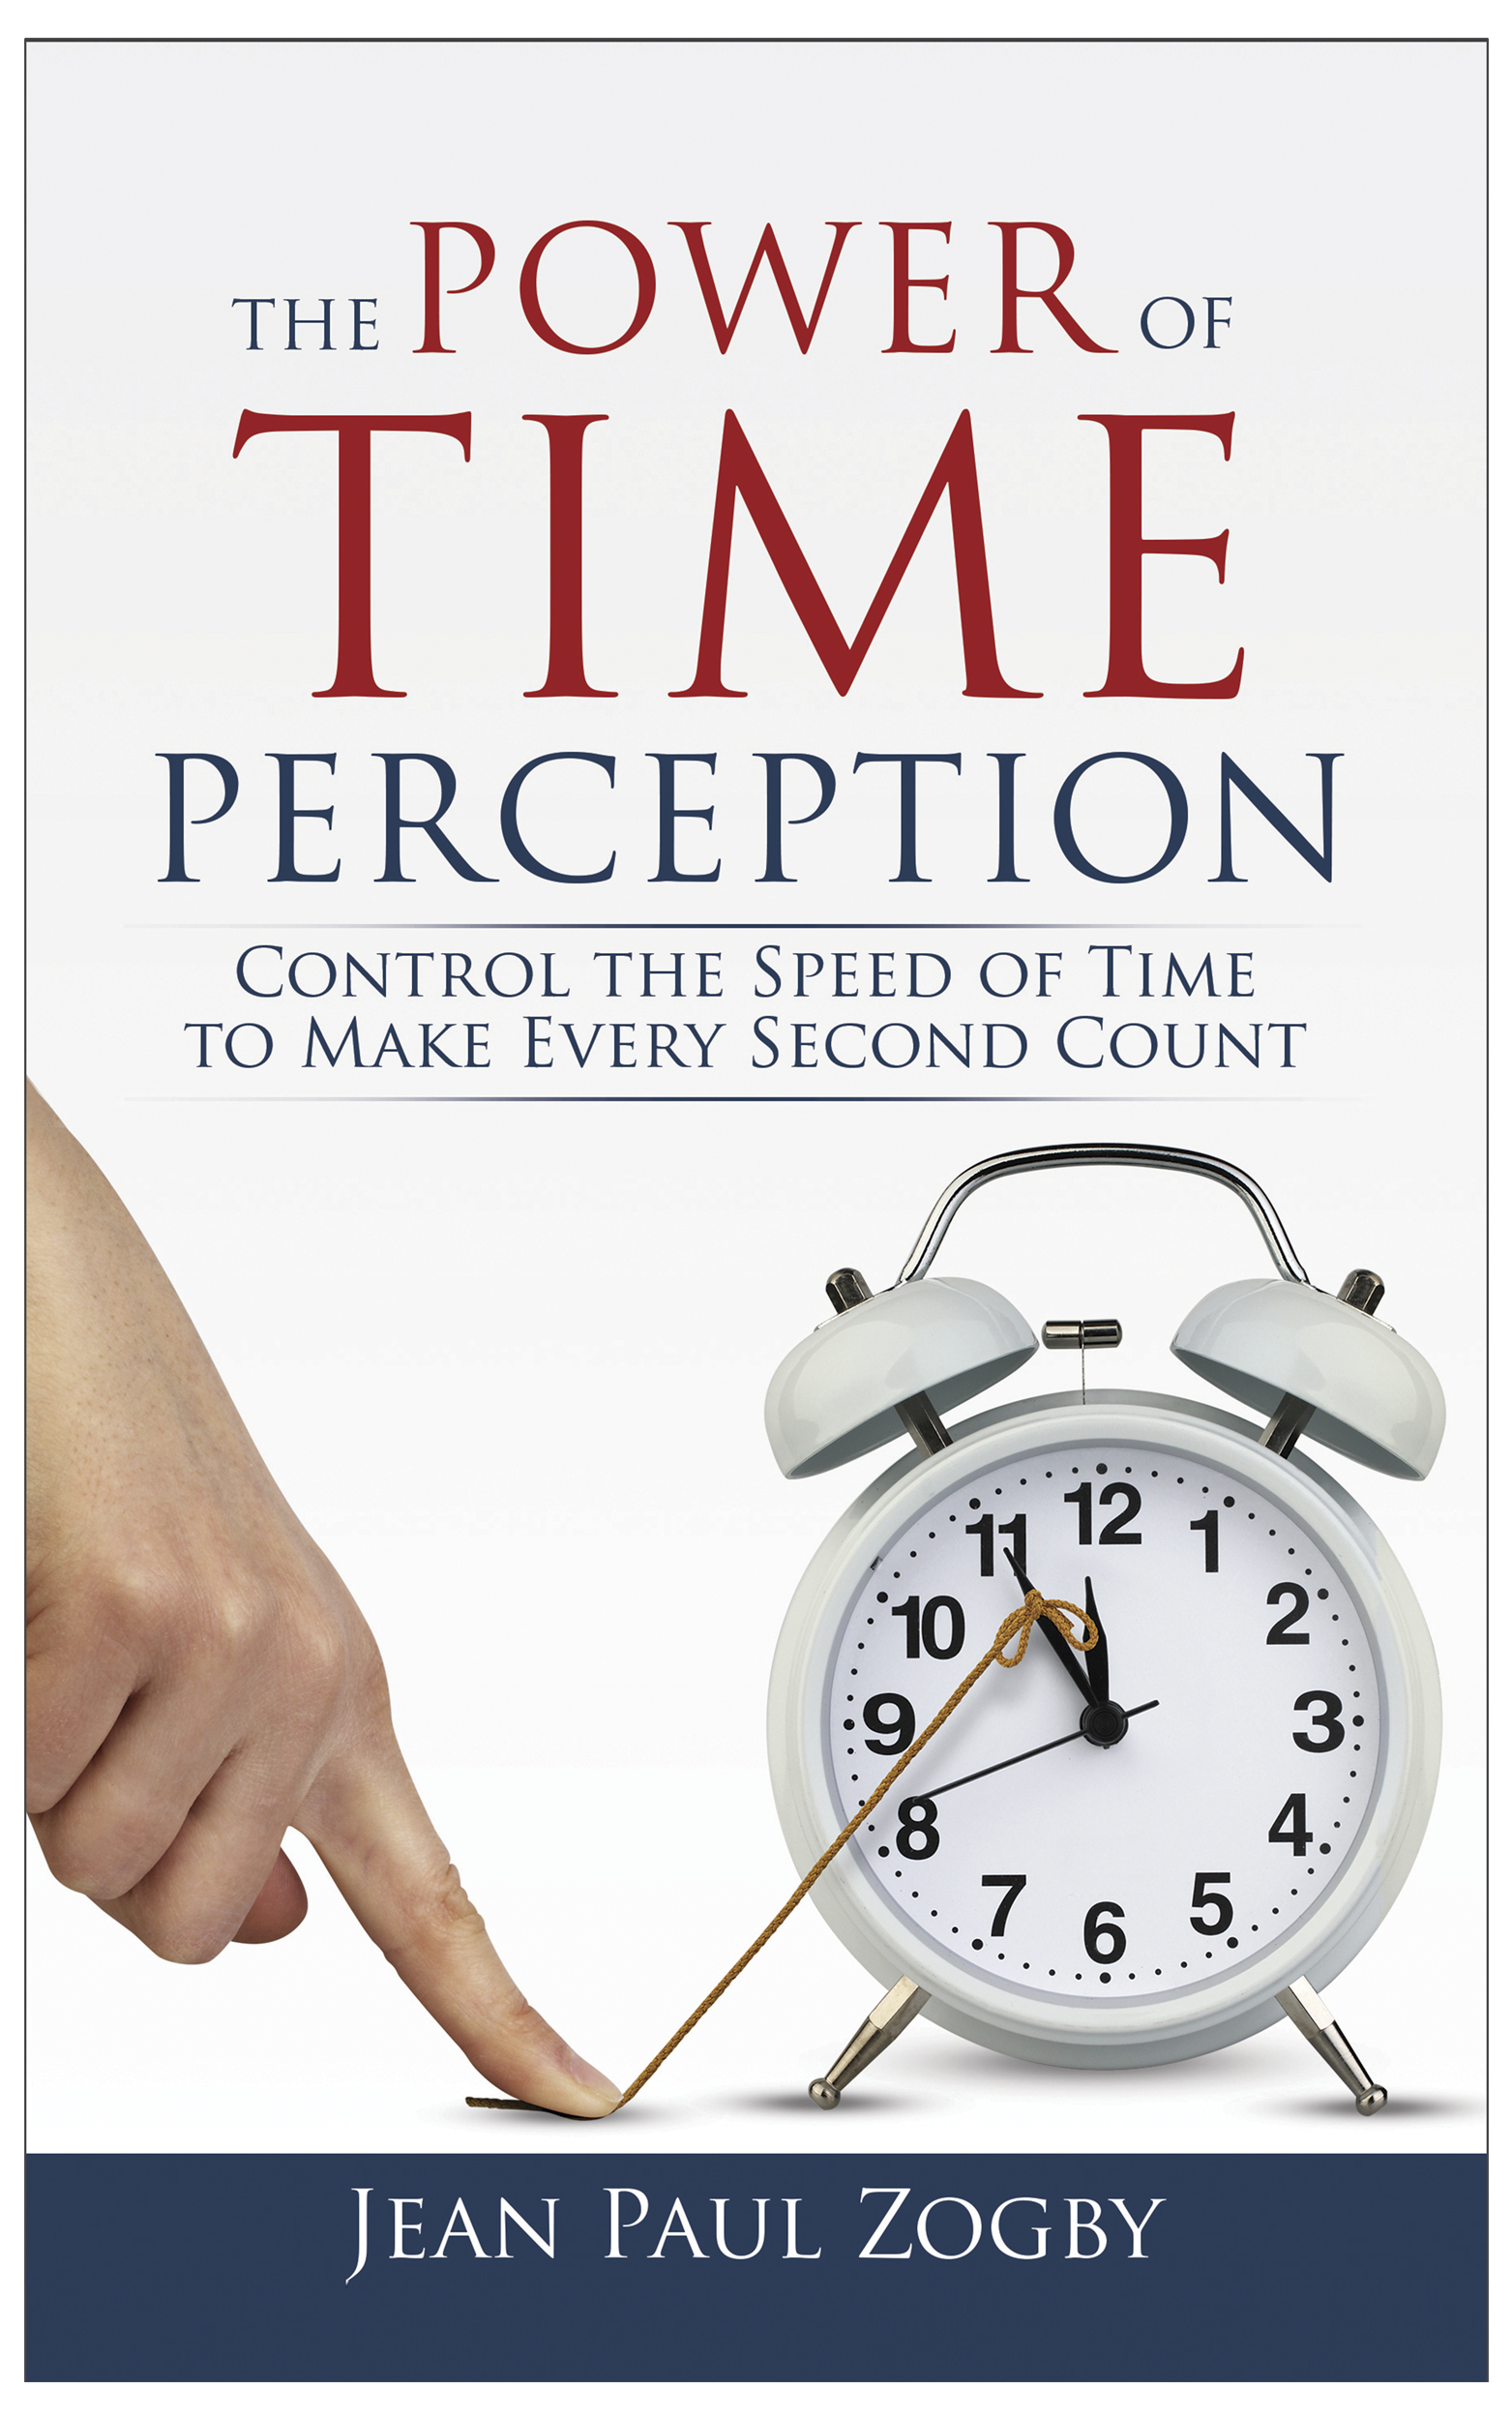 About The Power Of Time Perception By Jean Paul Zogby